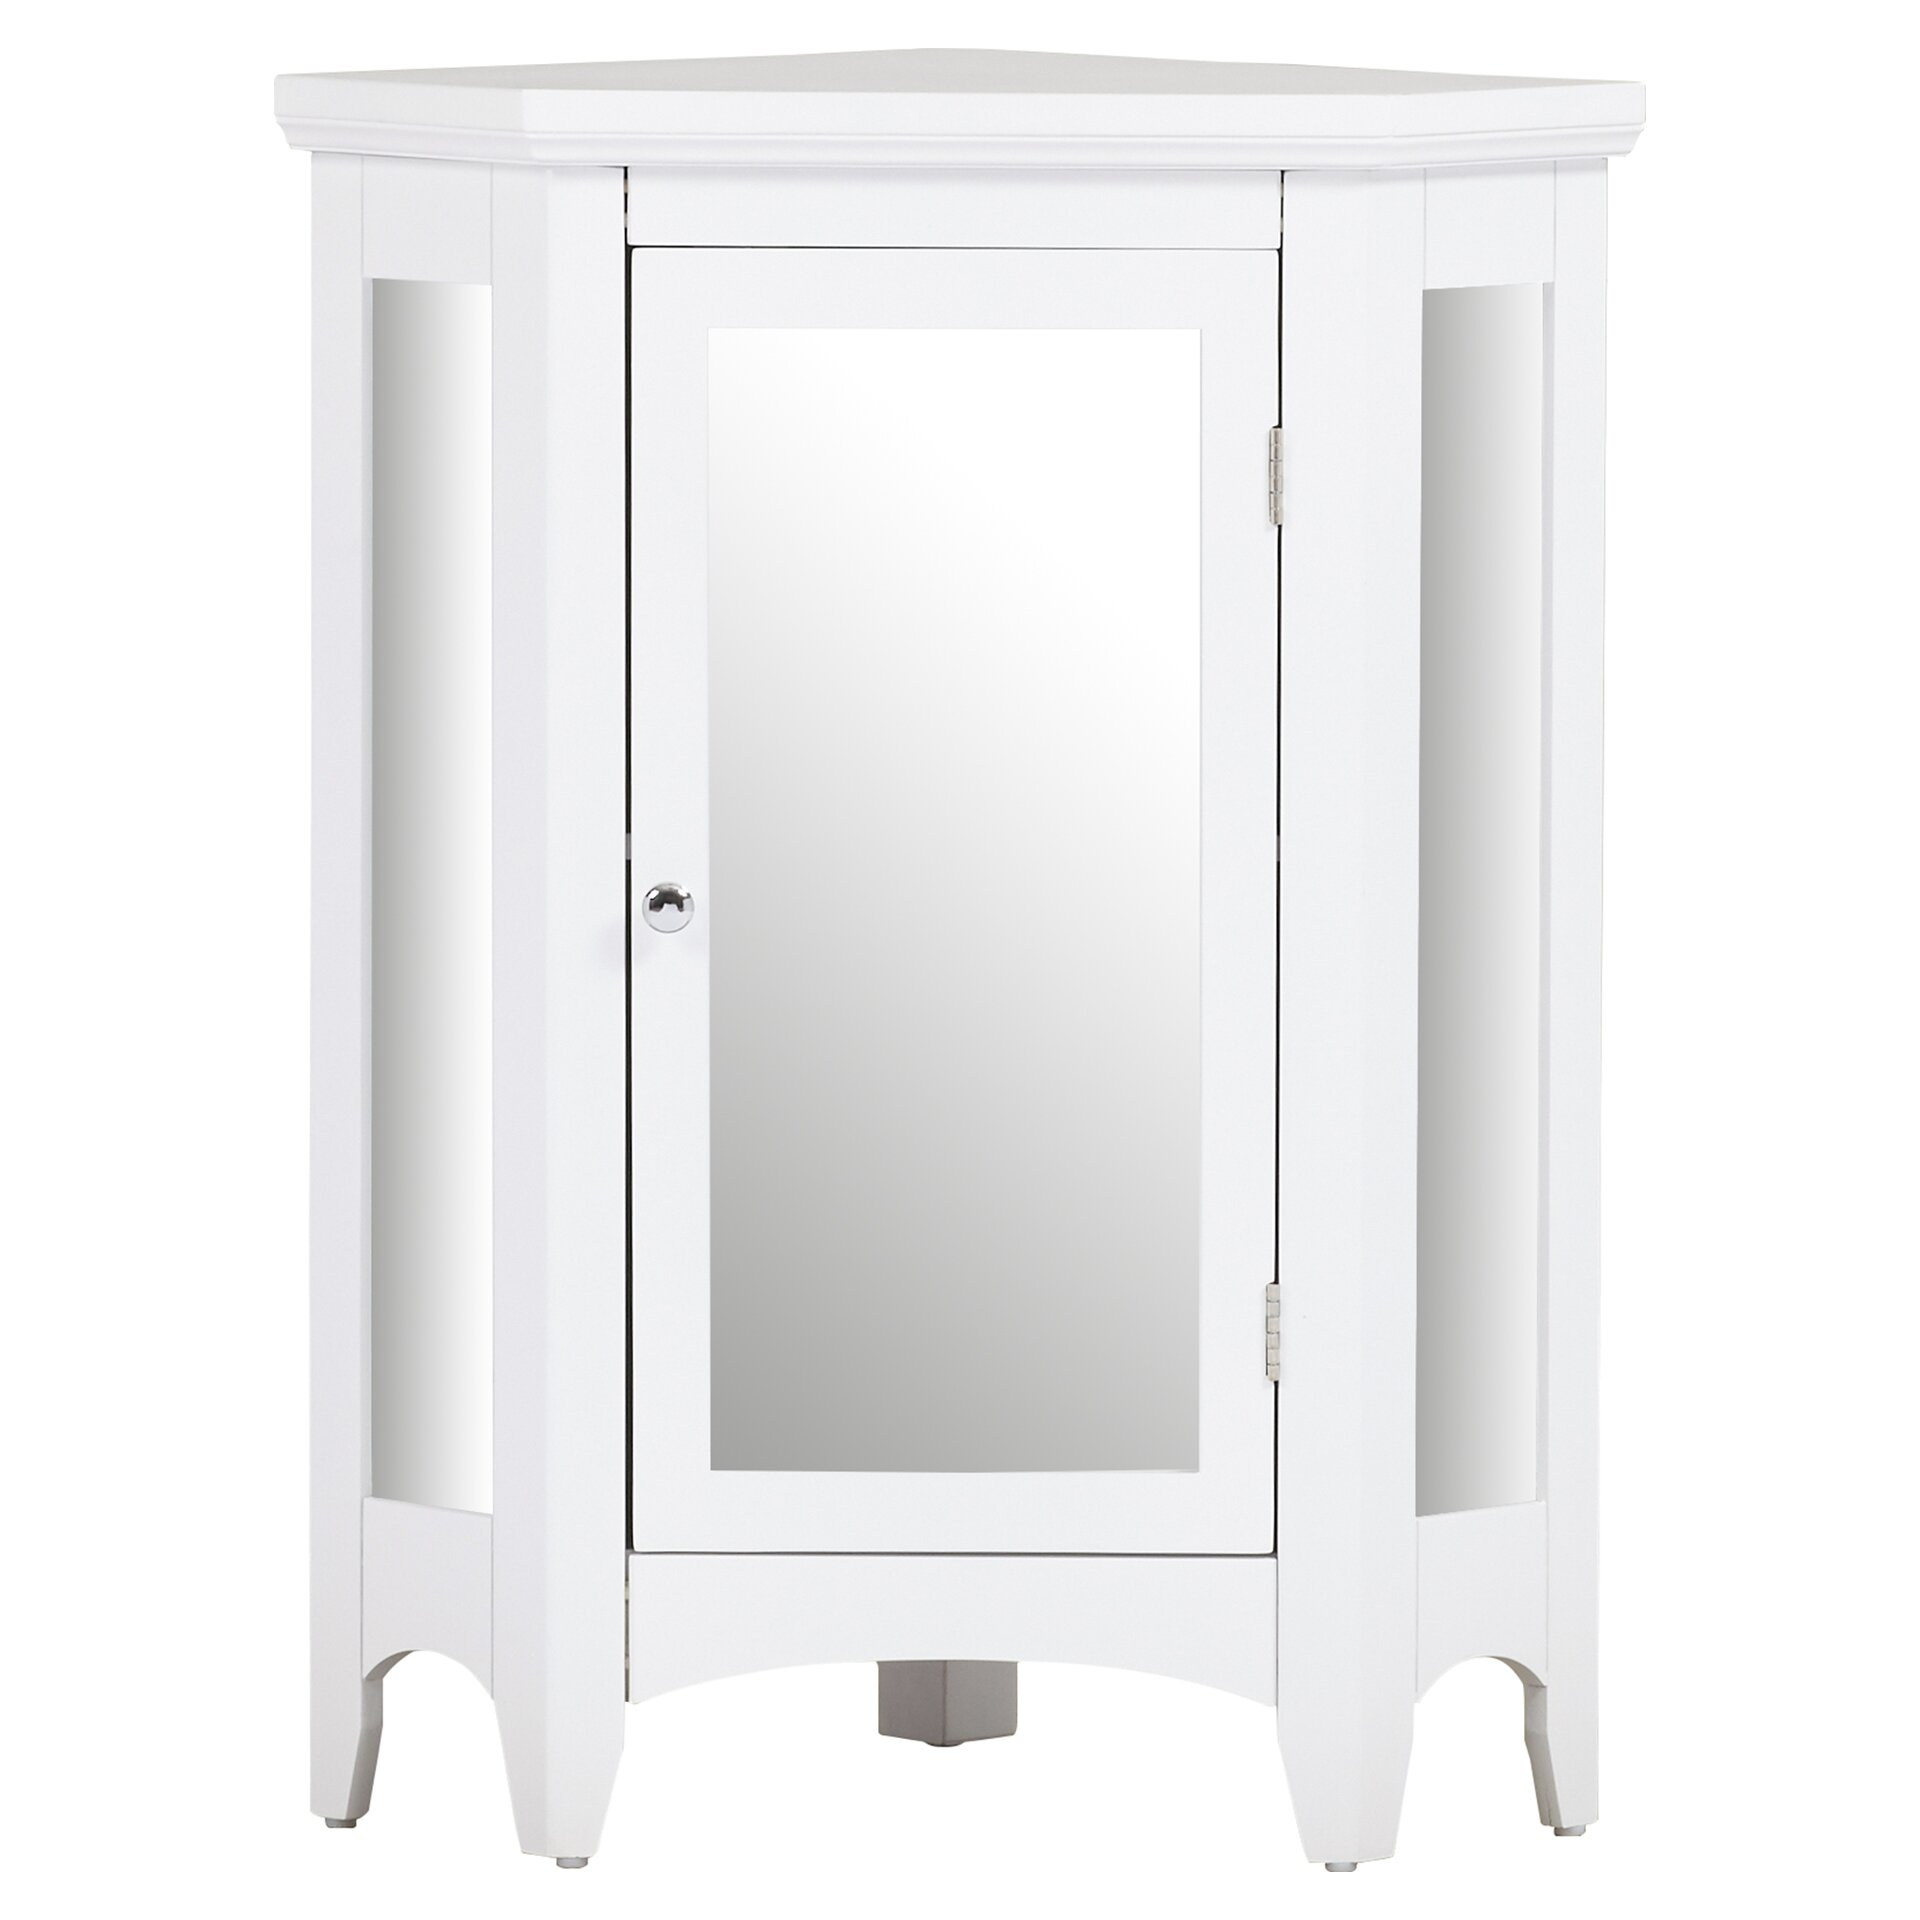 Free standing mirrored bathroom cabinet